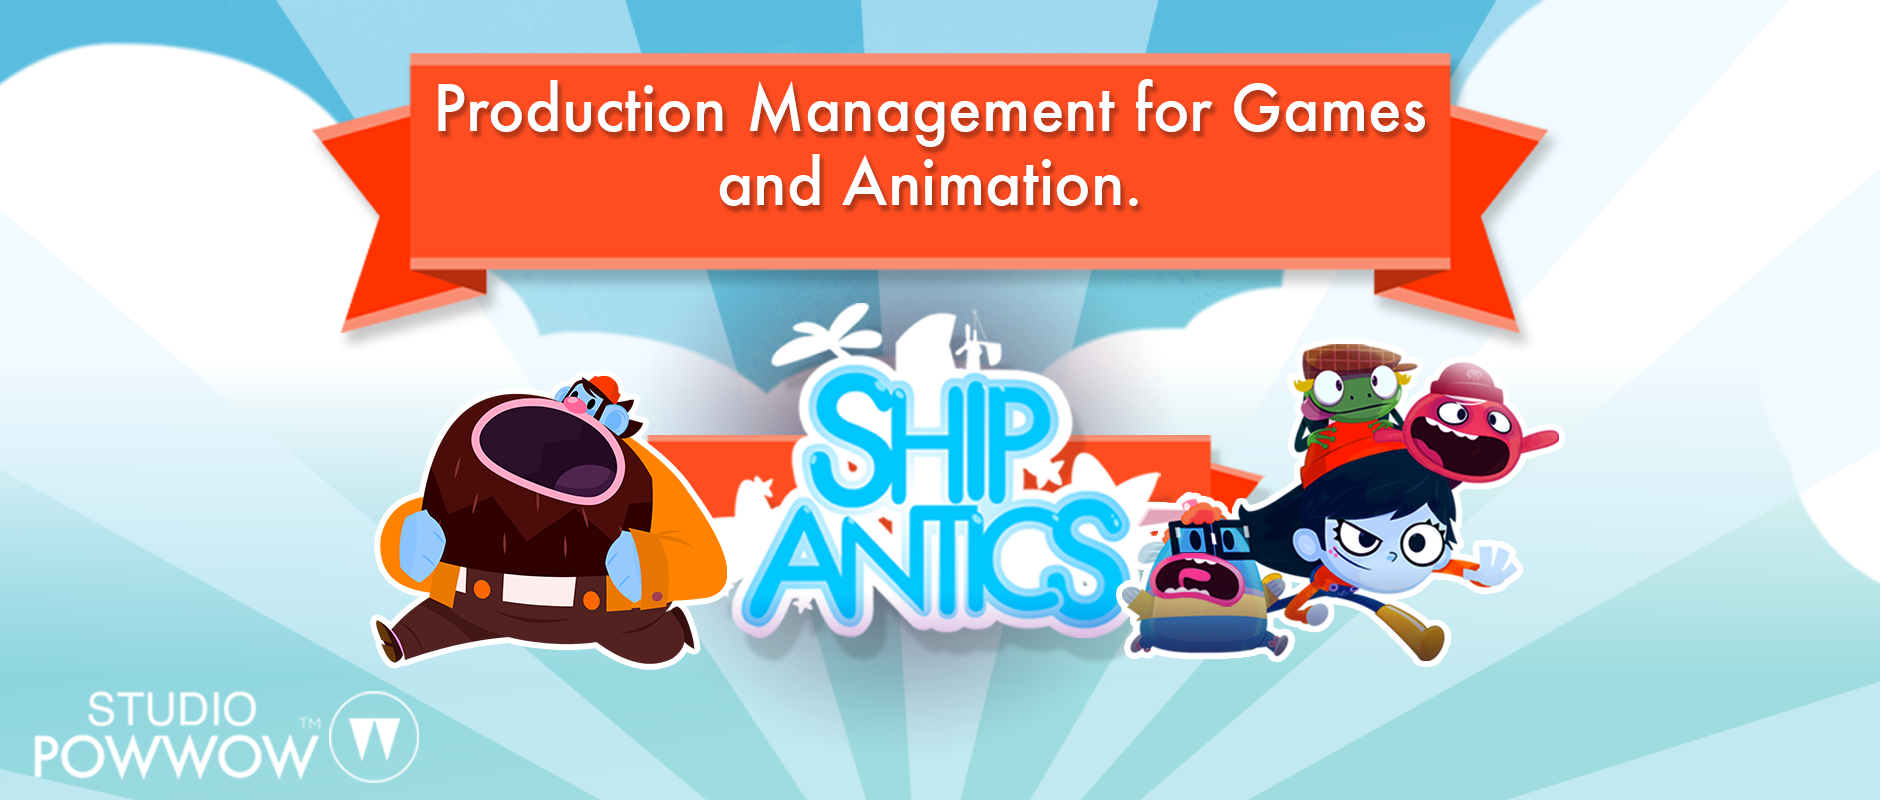 23.11.13 | Production Management for Games and Animation